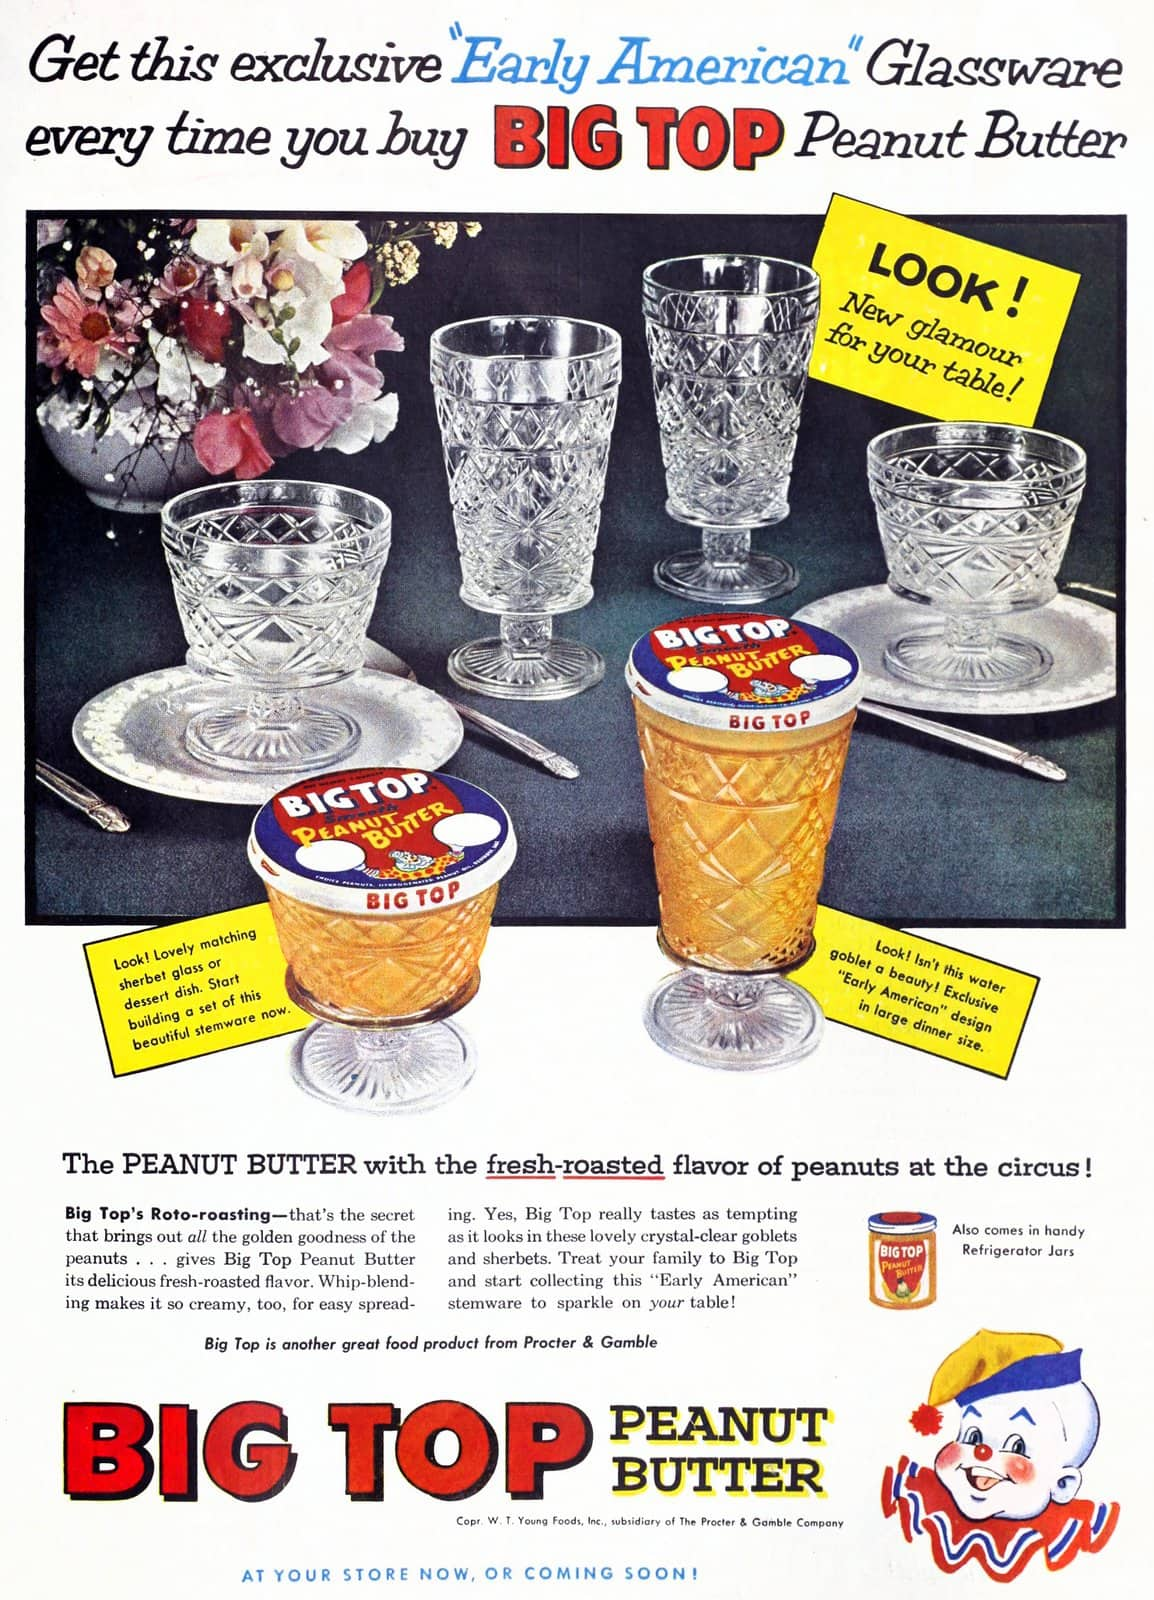 Retro Big Top Peanut Butter with Early American glassware you can collect (1957)